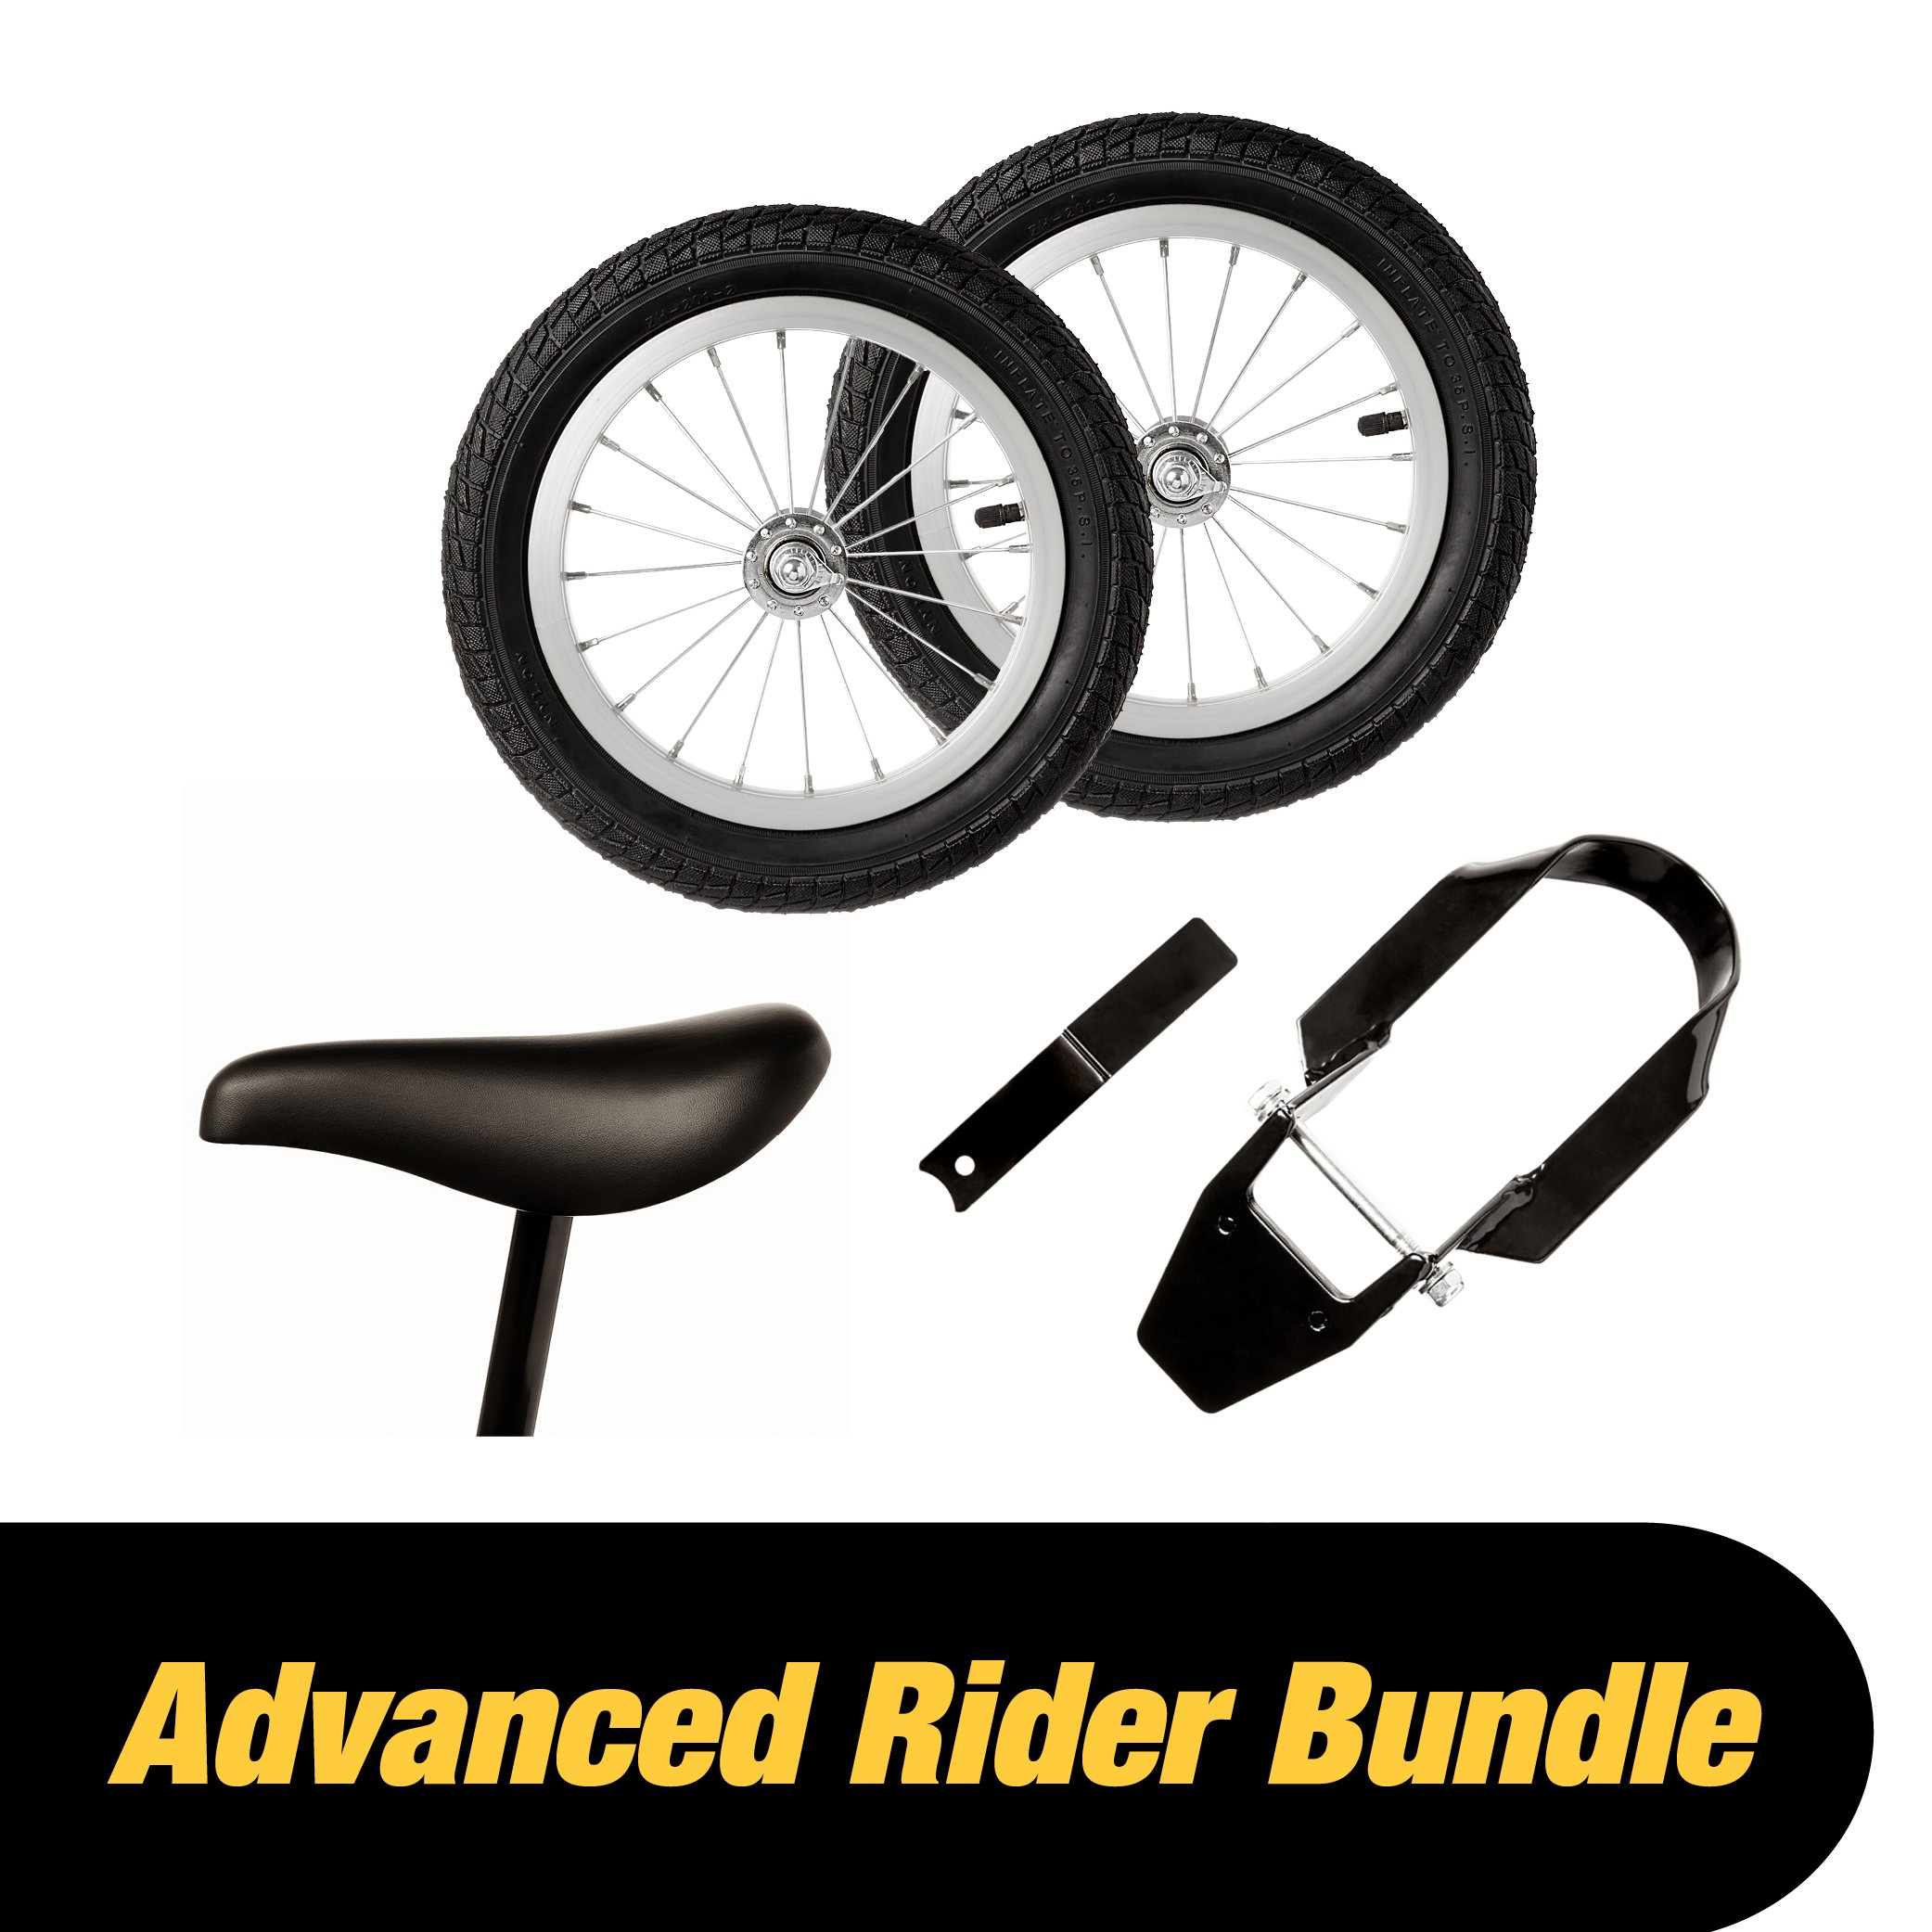 Strider - Advanced Rider Bundle